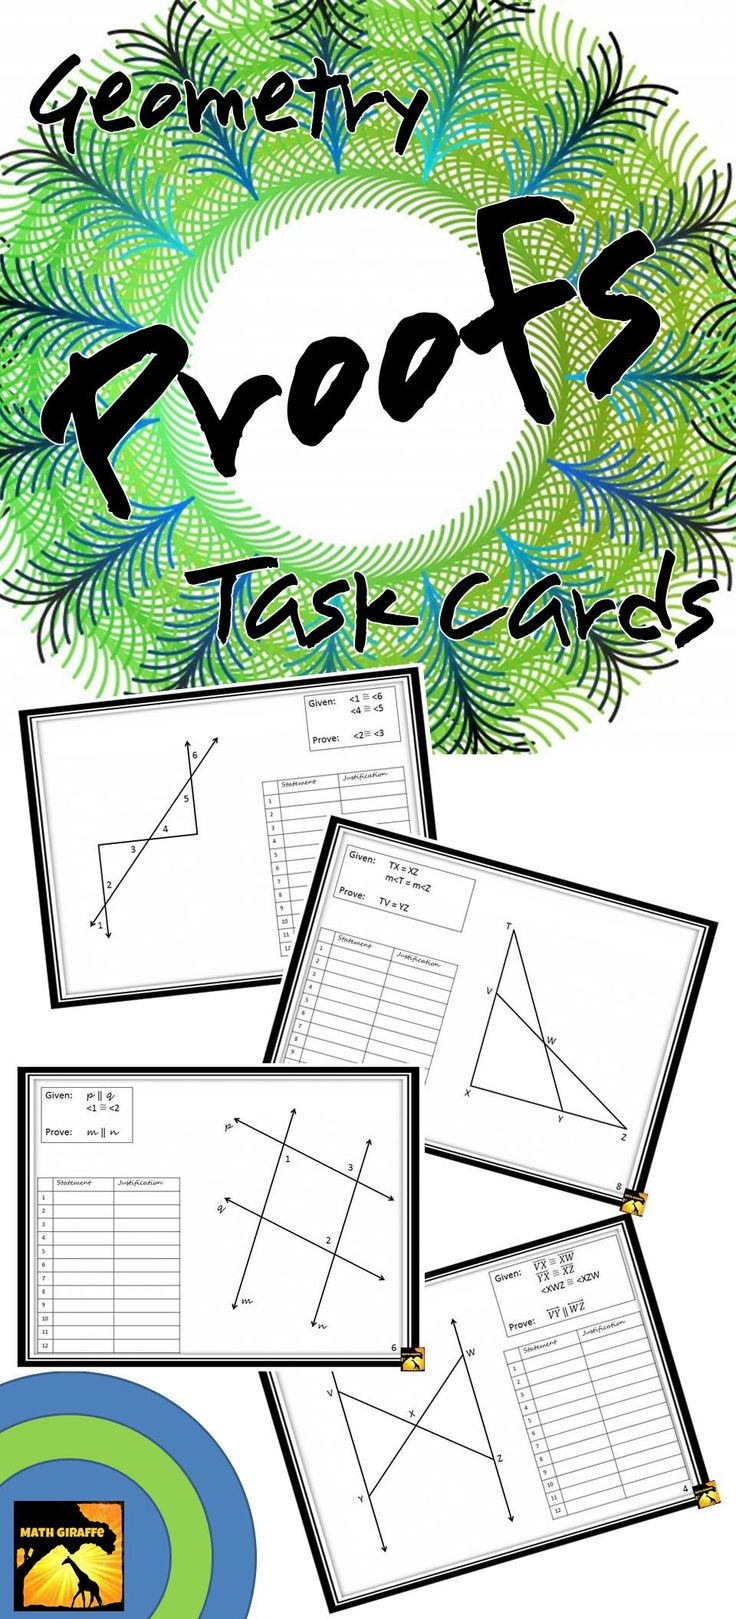 challenging set of geometry proofs for practice or assessment